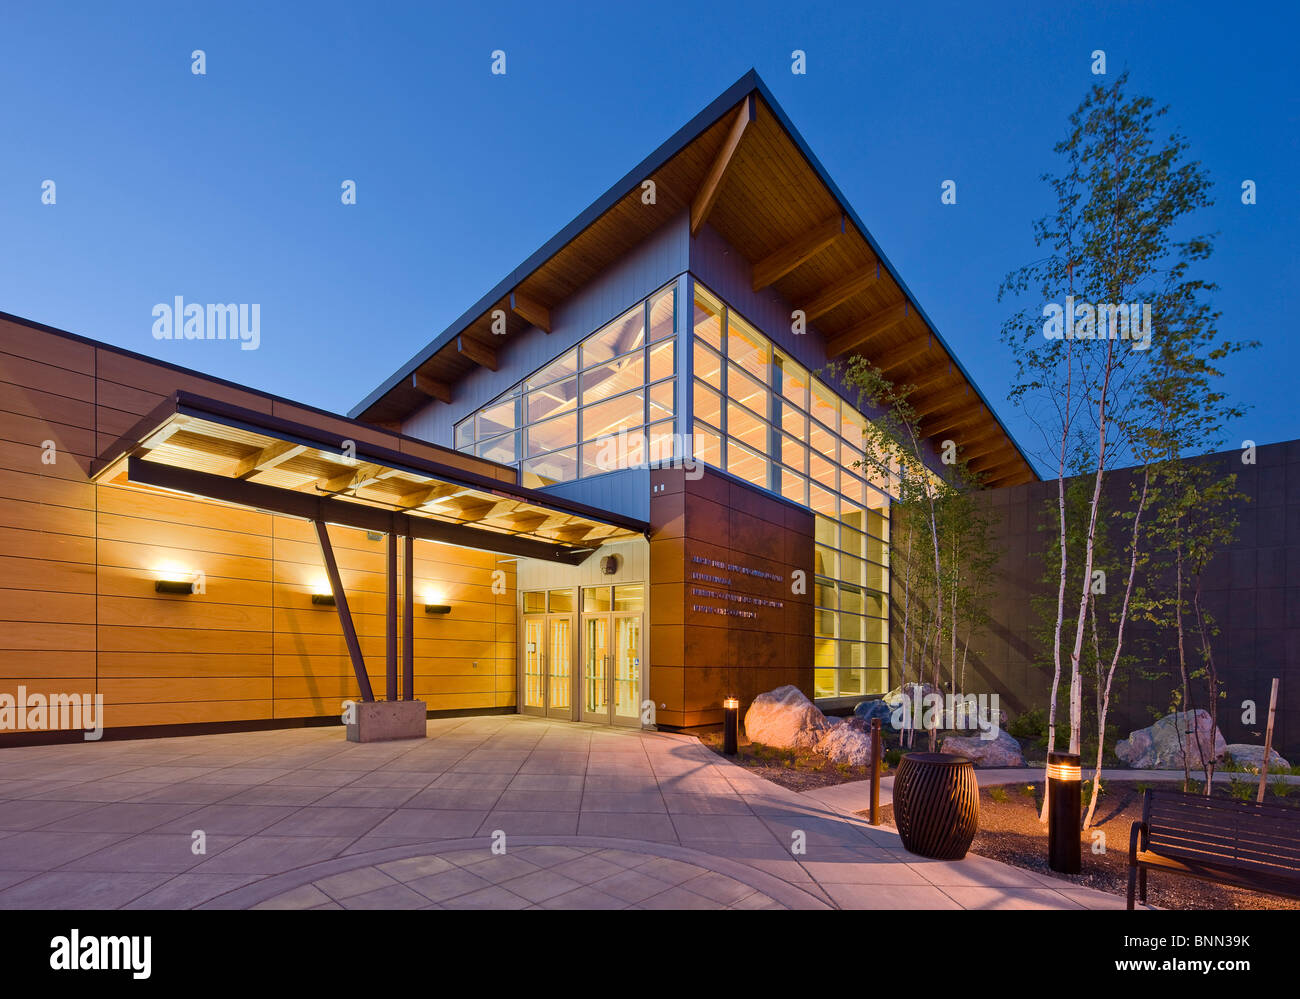 The Morris Thompson Cultural and Visitors Center in downtown Fairbanks, Alaska Stock Photo